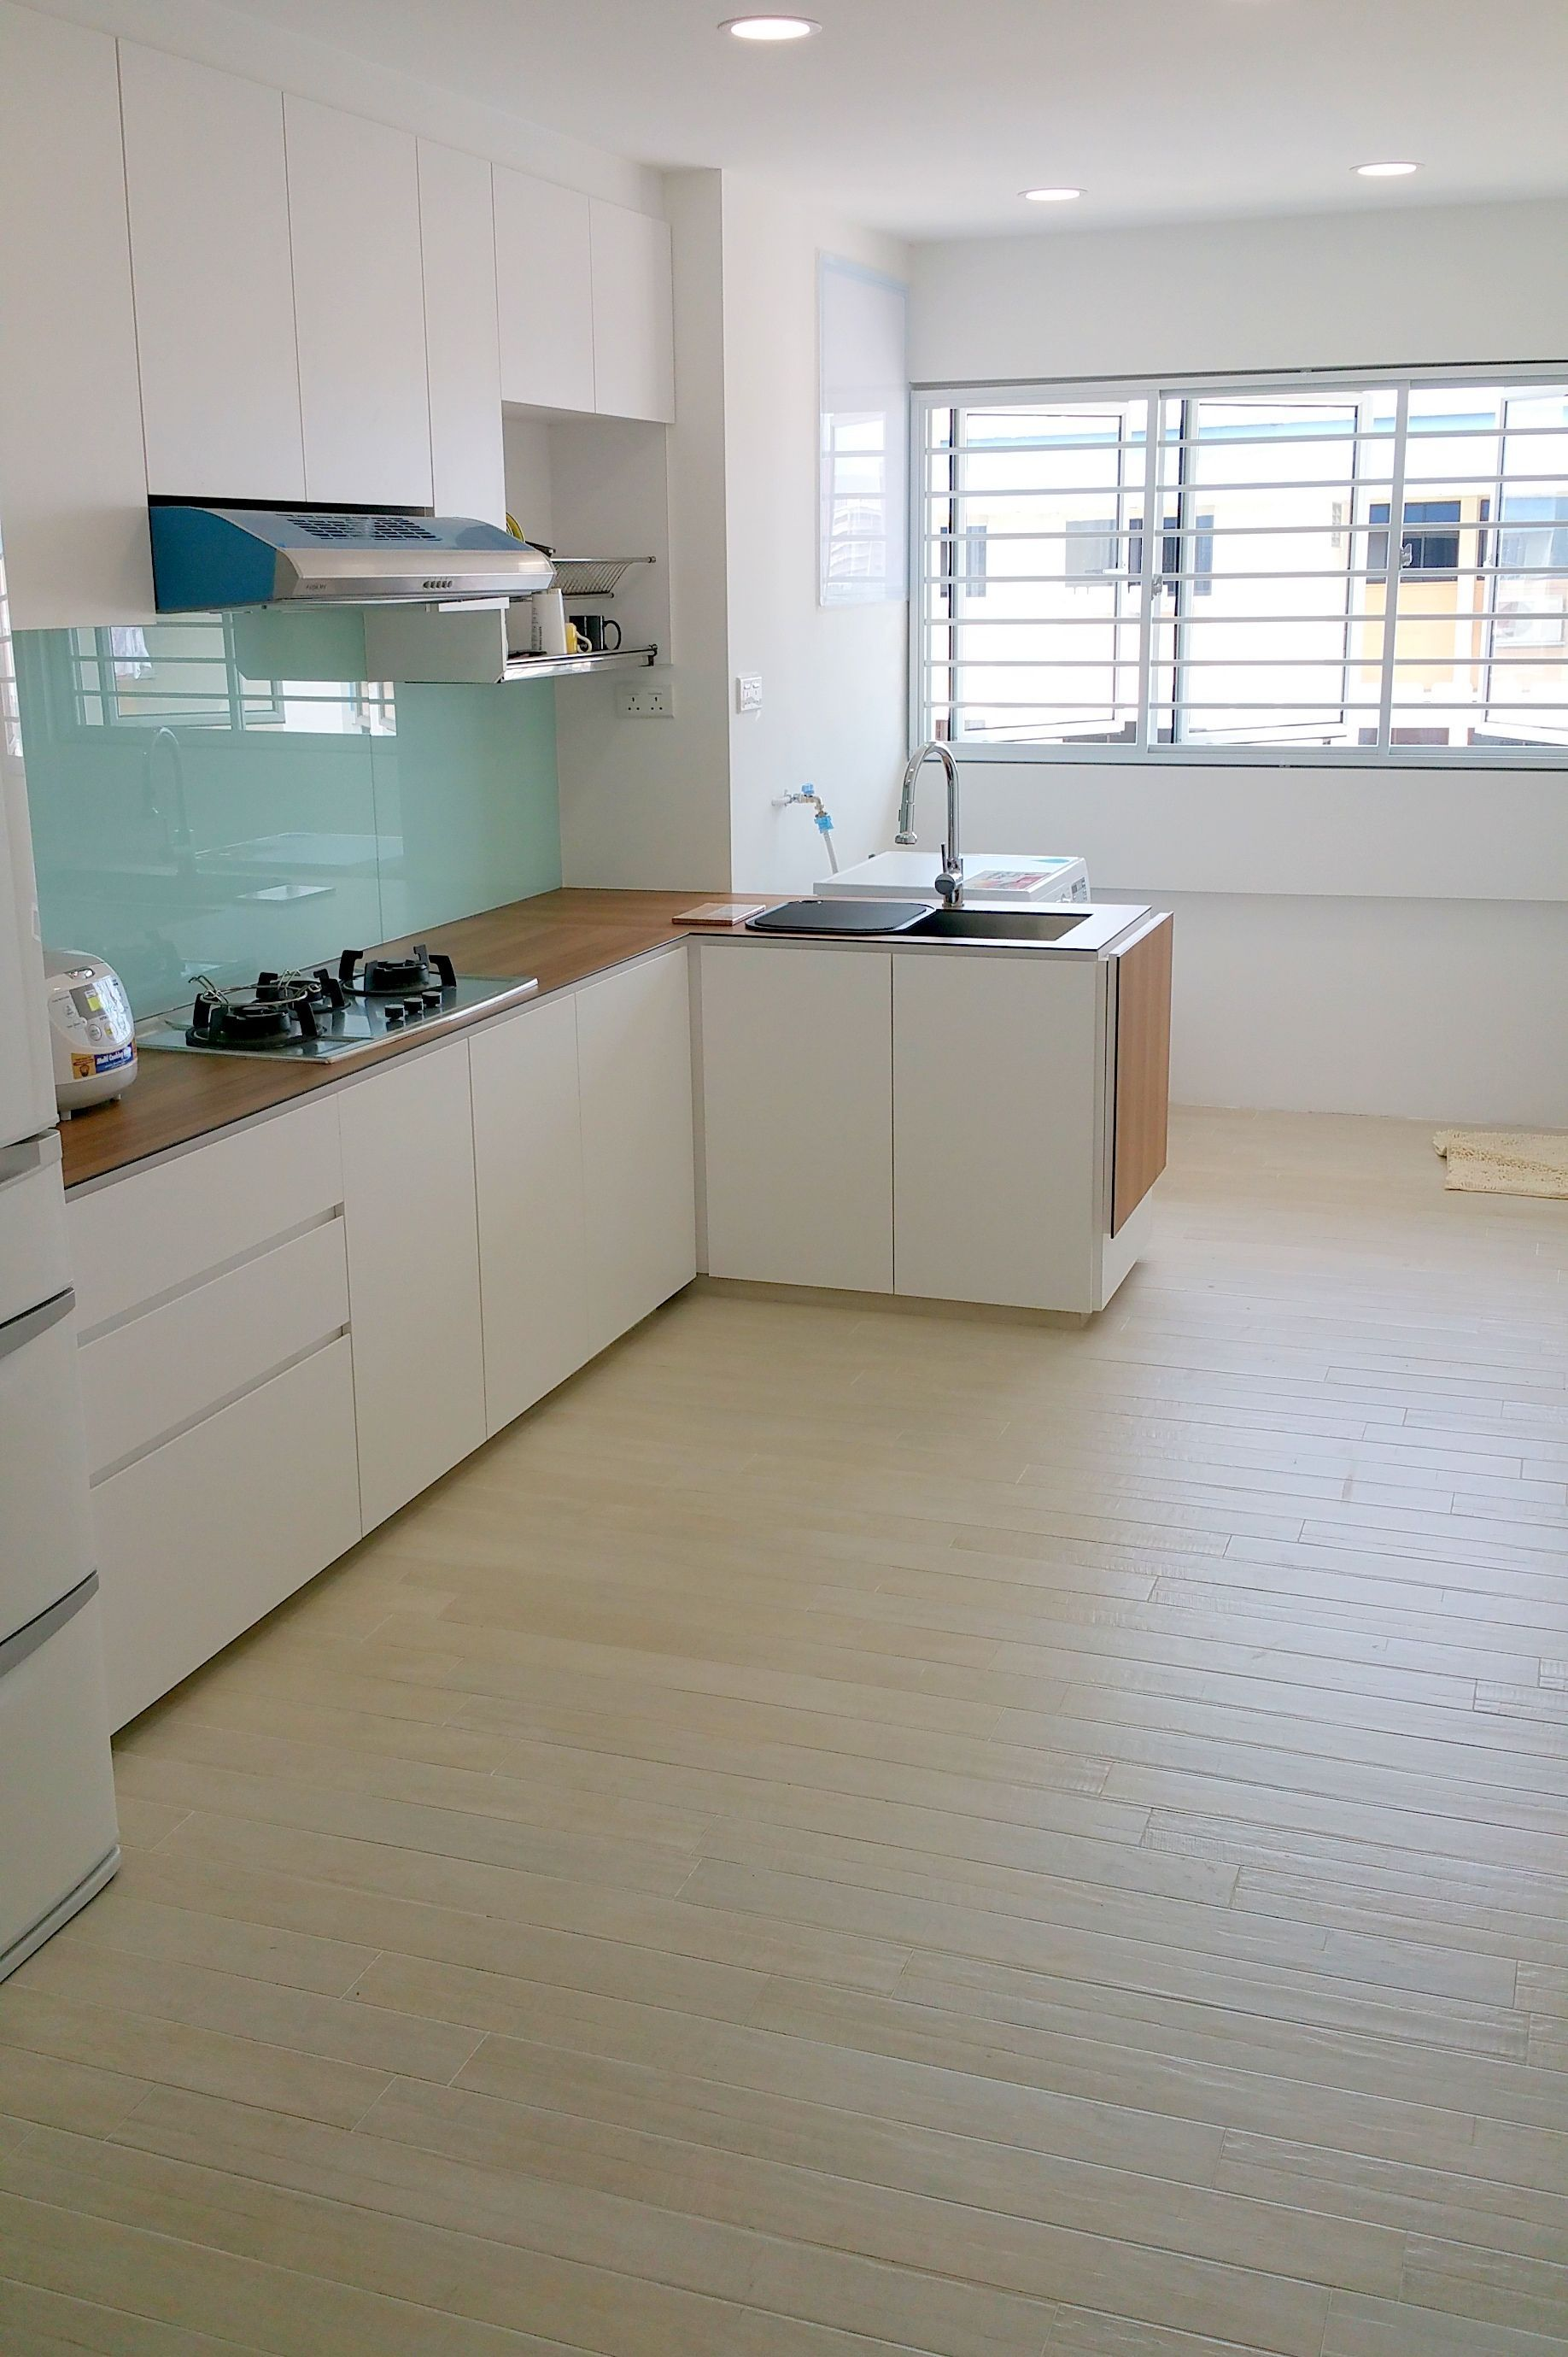 Virtual Kitchen Design Hdb Singapore: Inspirations And Ideas For My Own 3